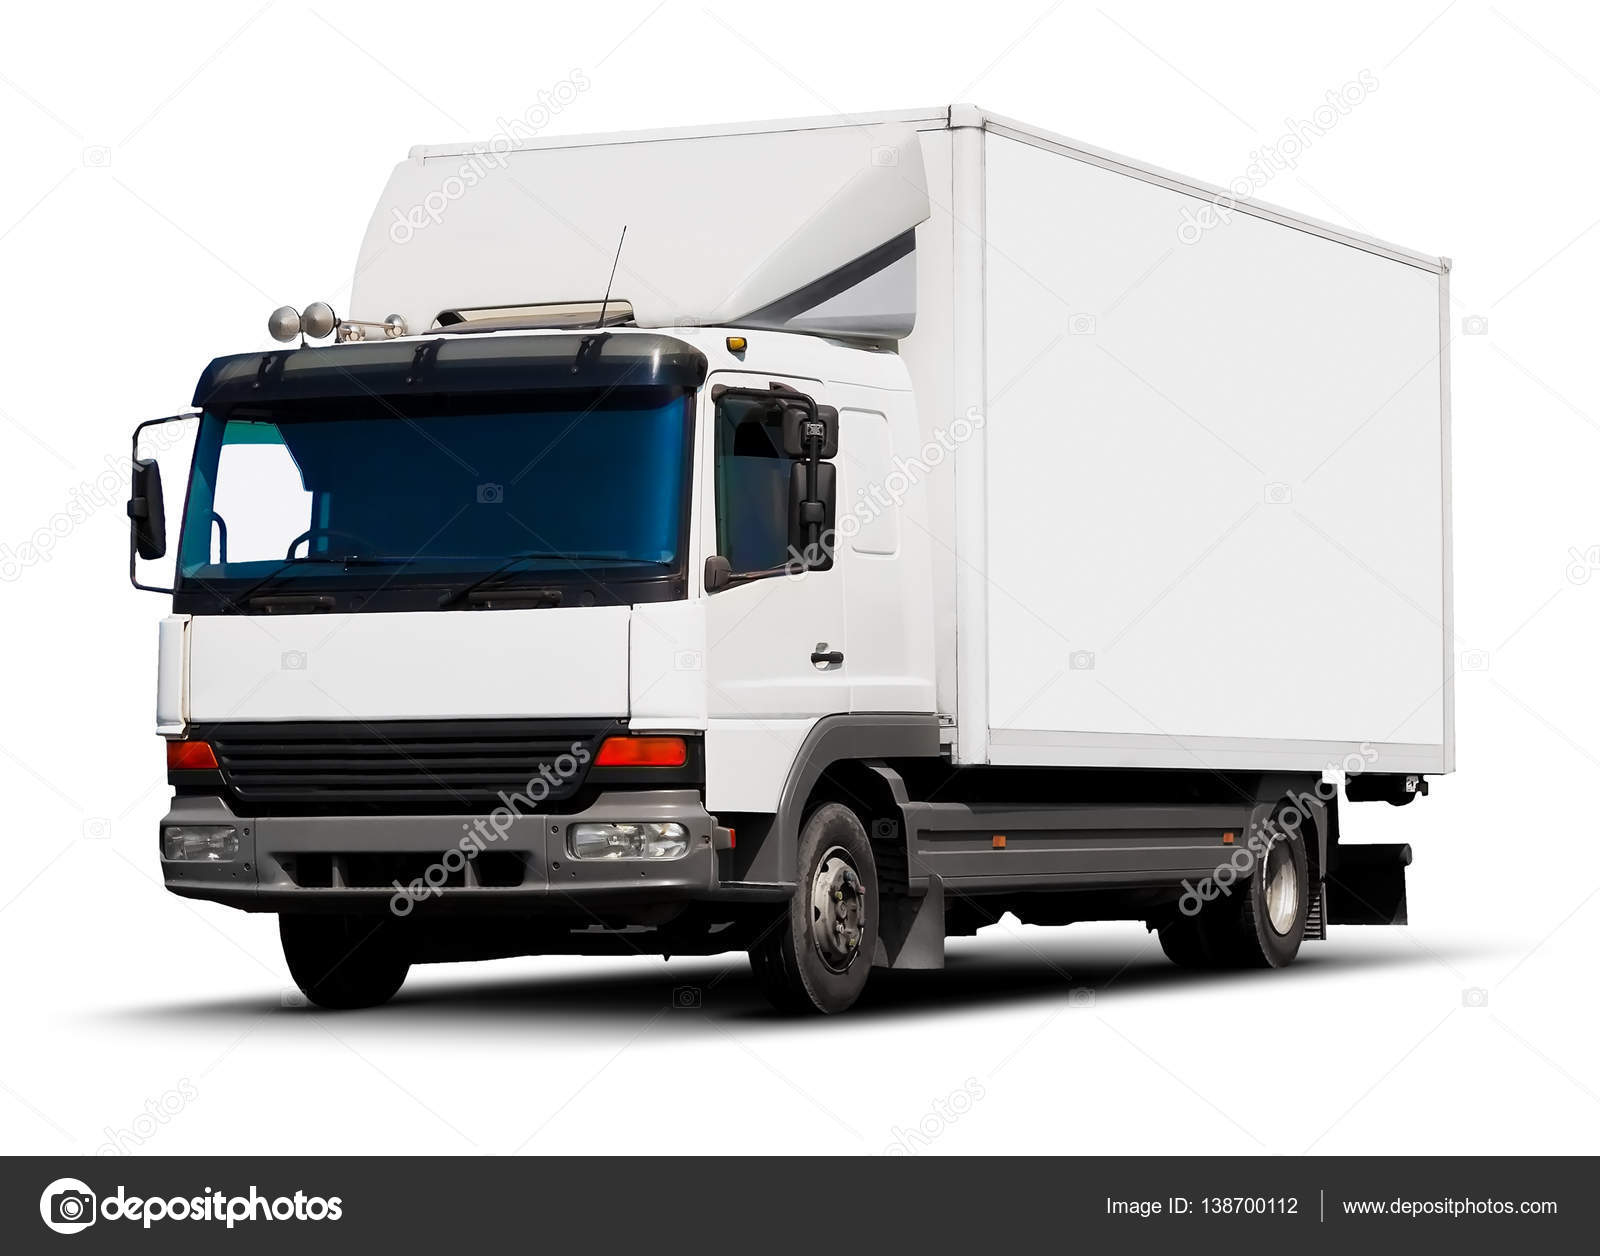 White delivery truck — Stock Photo © scanrail #138700112